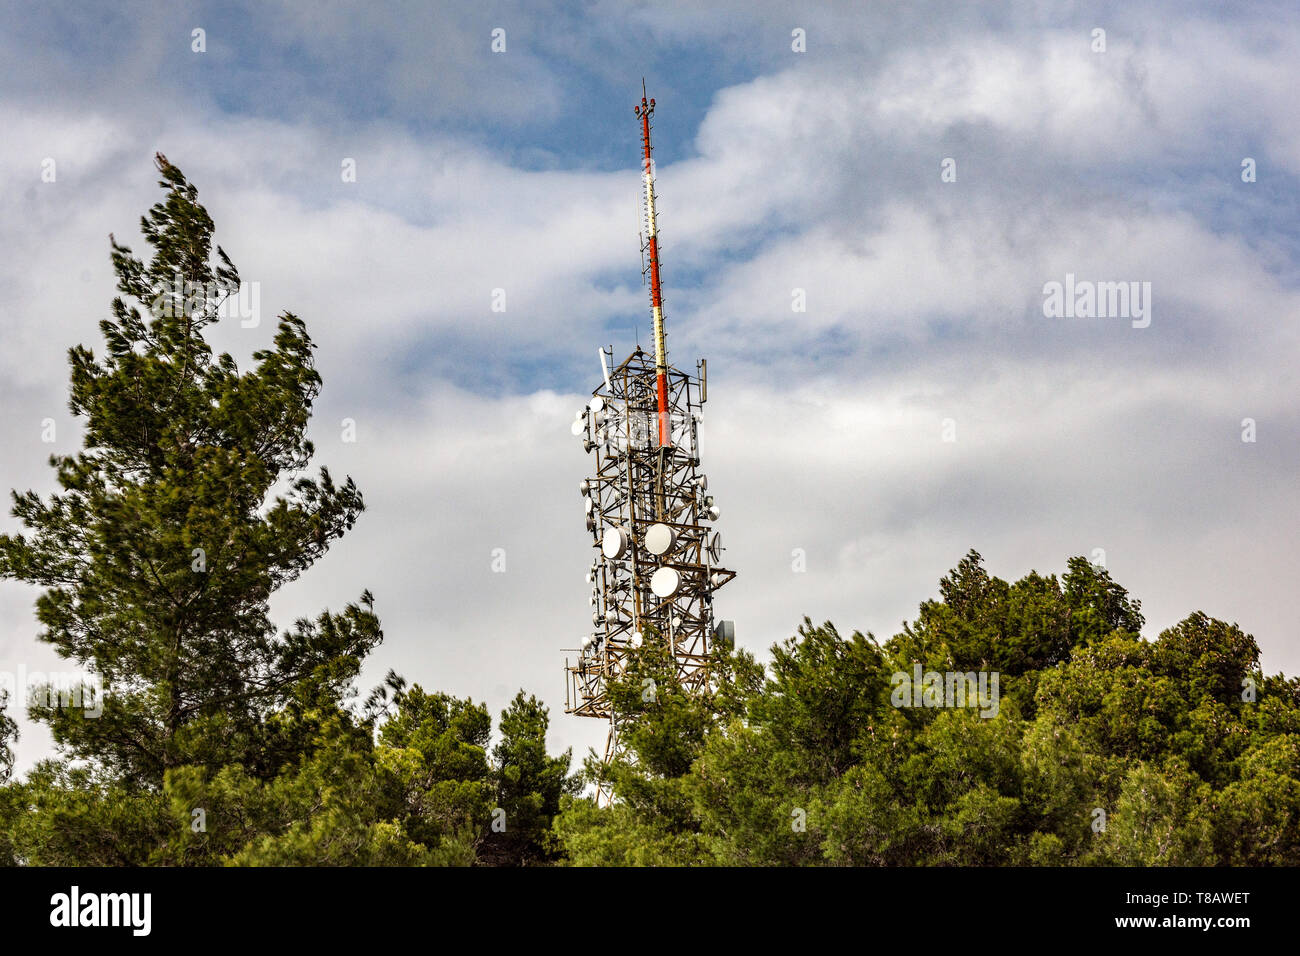 Broadcast Towers Stock Photos & Broadcast Towers Stock